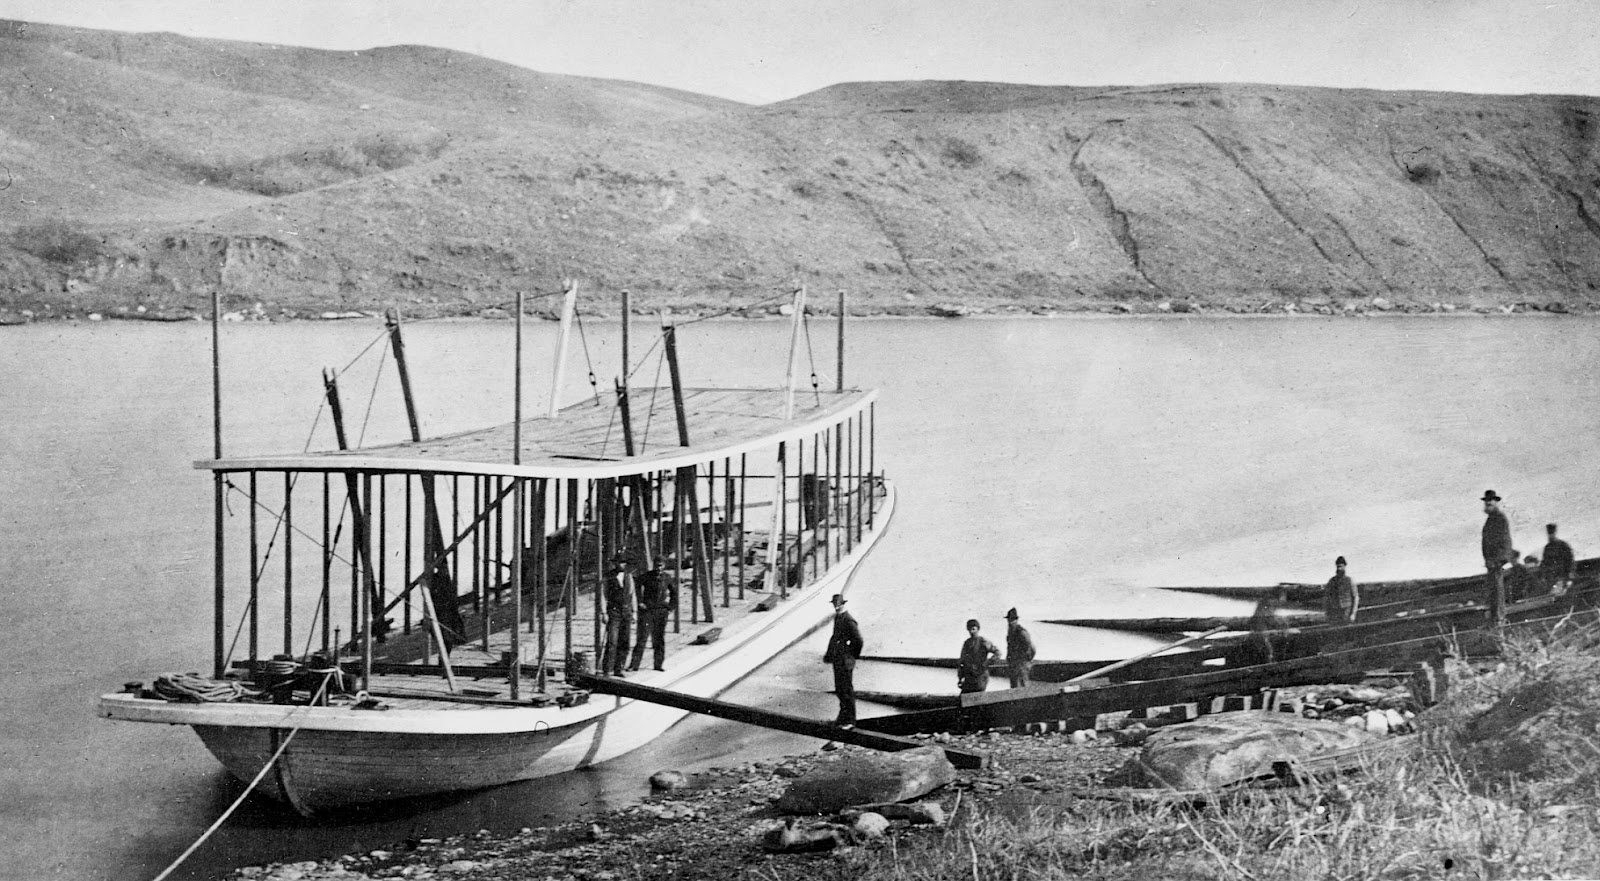 In the 19th Century, steamboat was the preferred means to travel between cities. It was also used to transport coal from Lethbridge to Medicine Hat before the railway was completed. (Photo: Galt Archives)